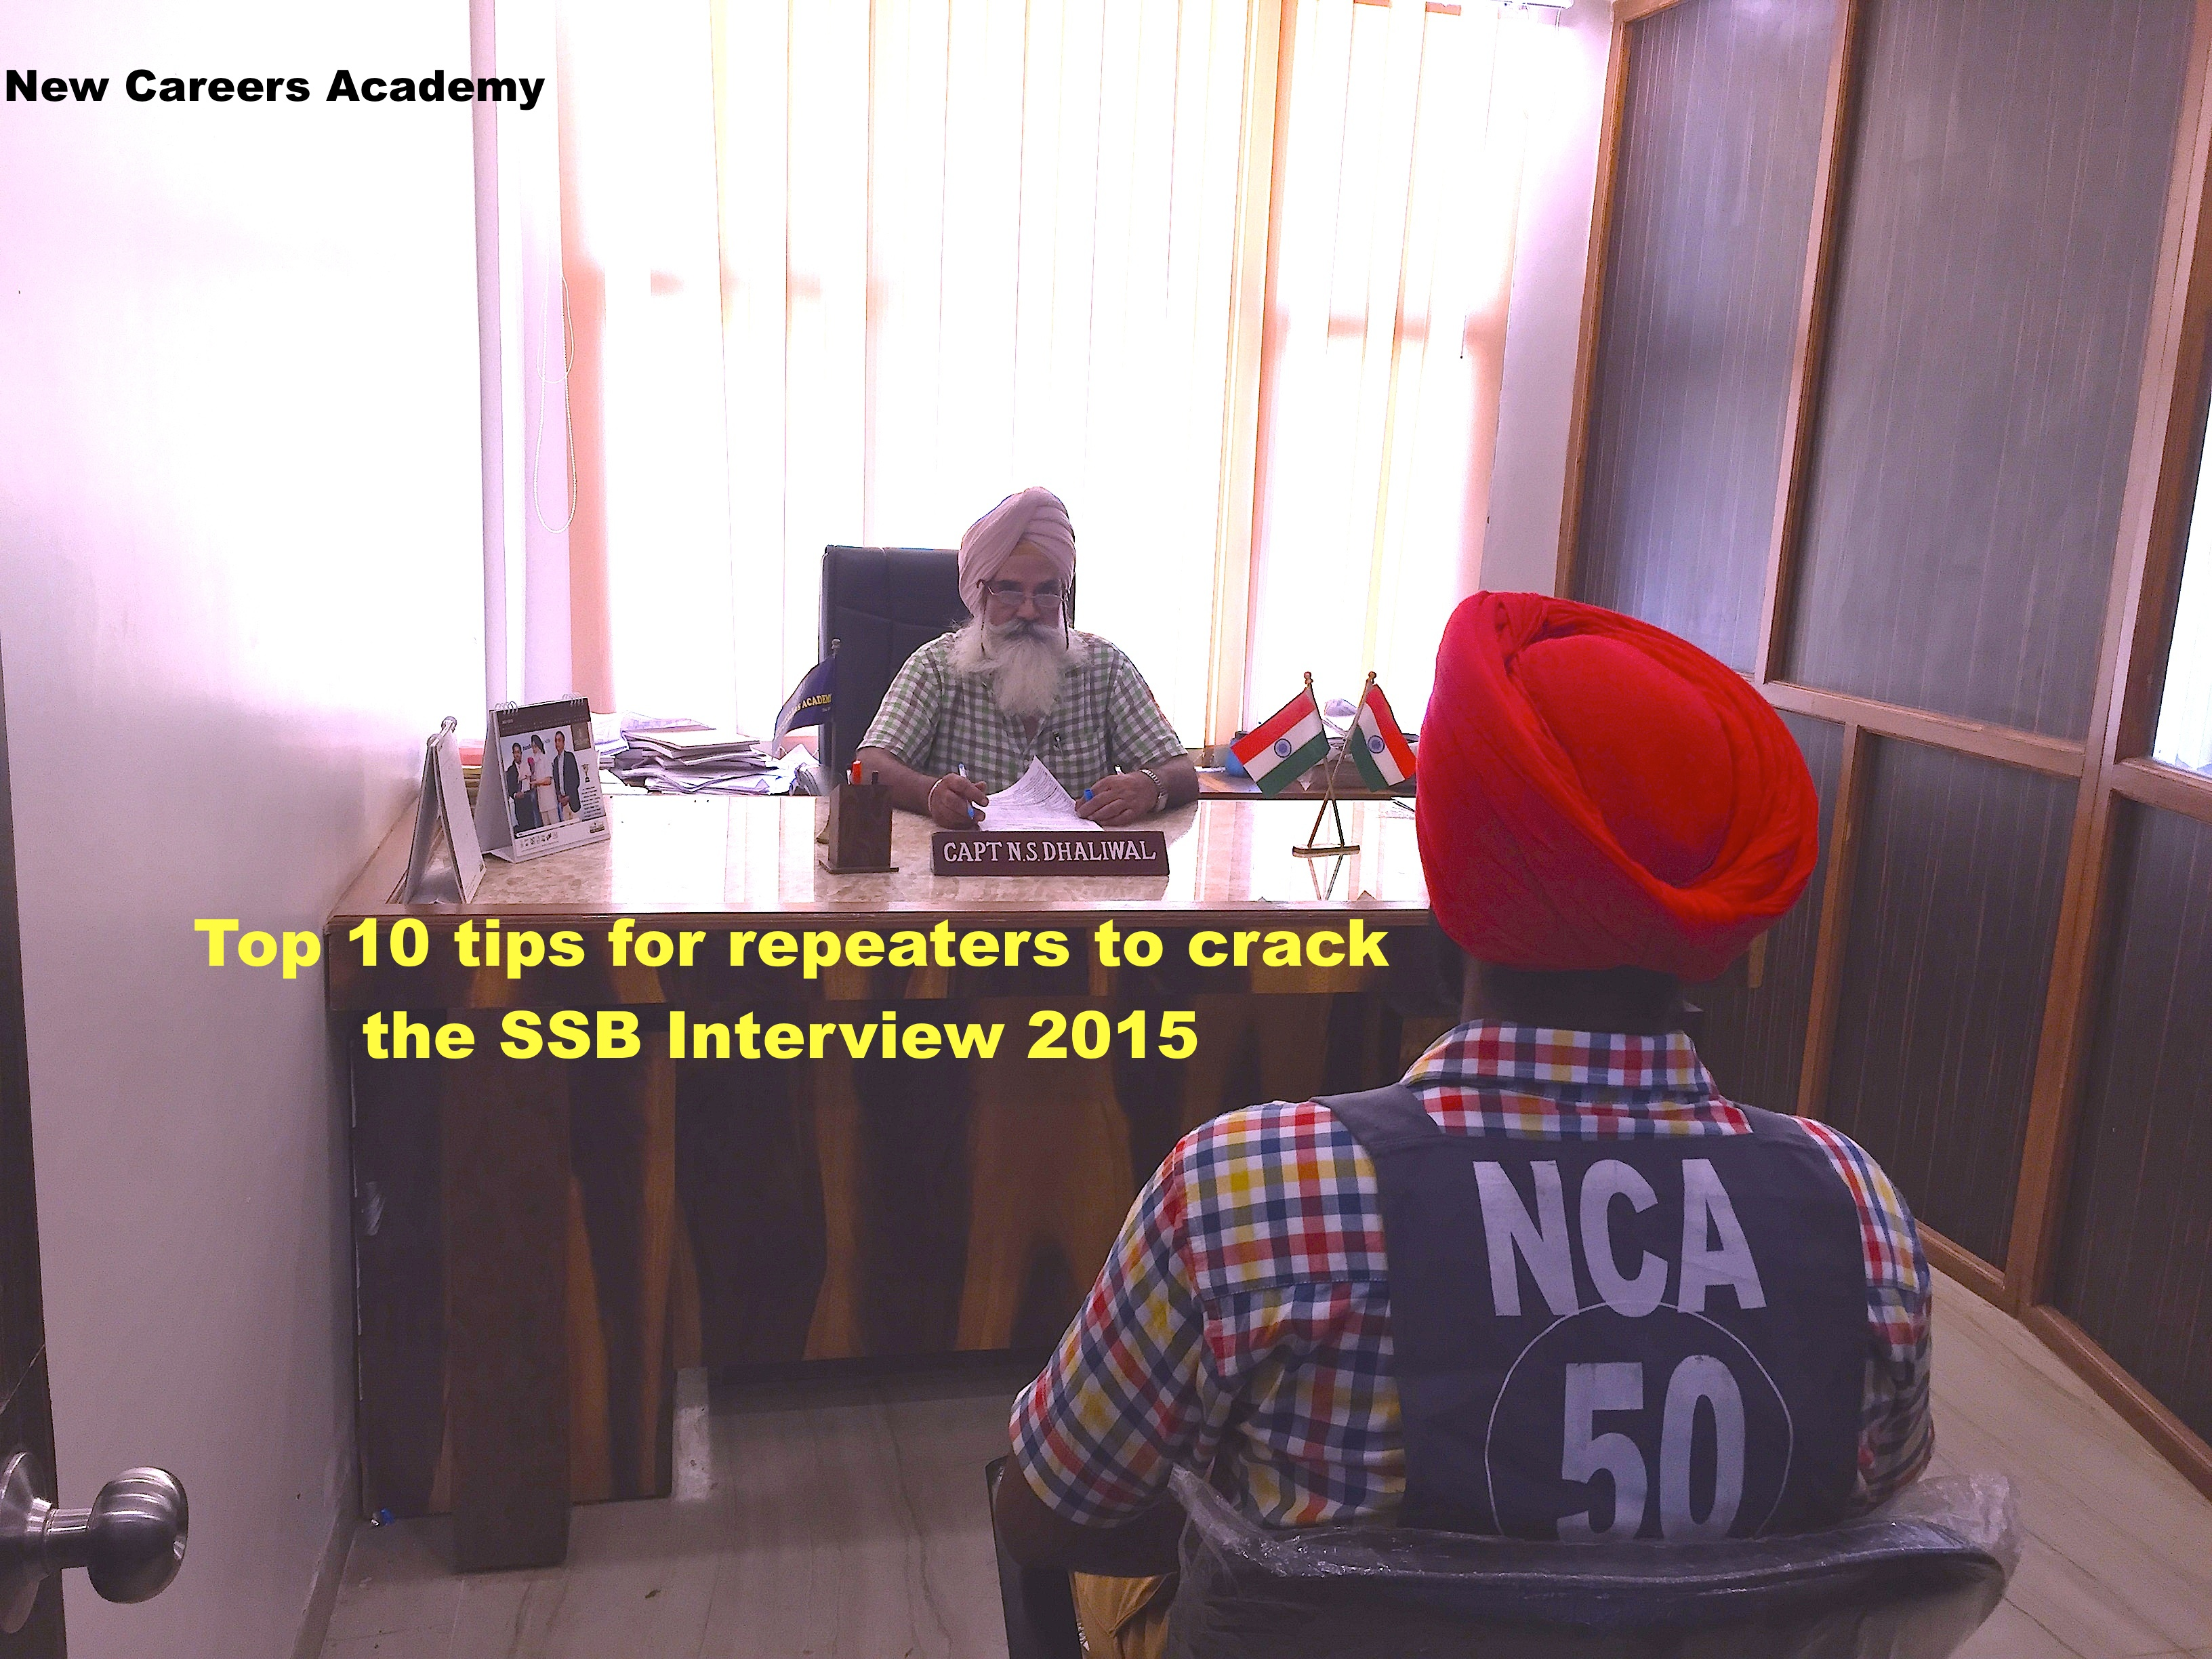 Top 10 tips for repeaters to crack the SSB Interview 2015